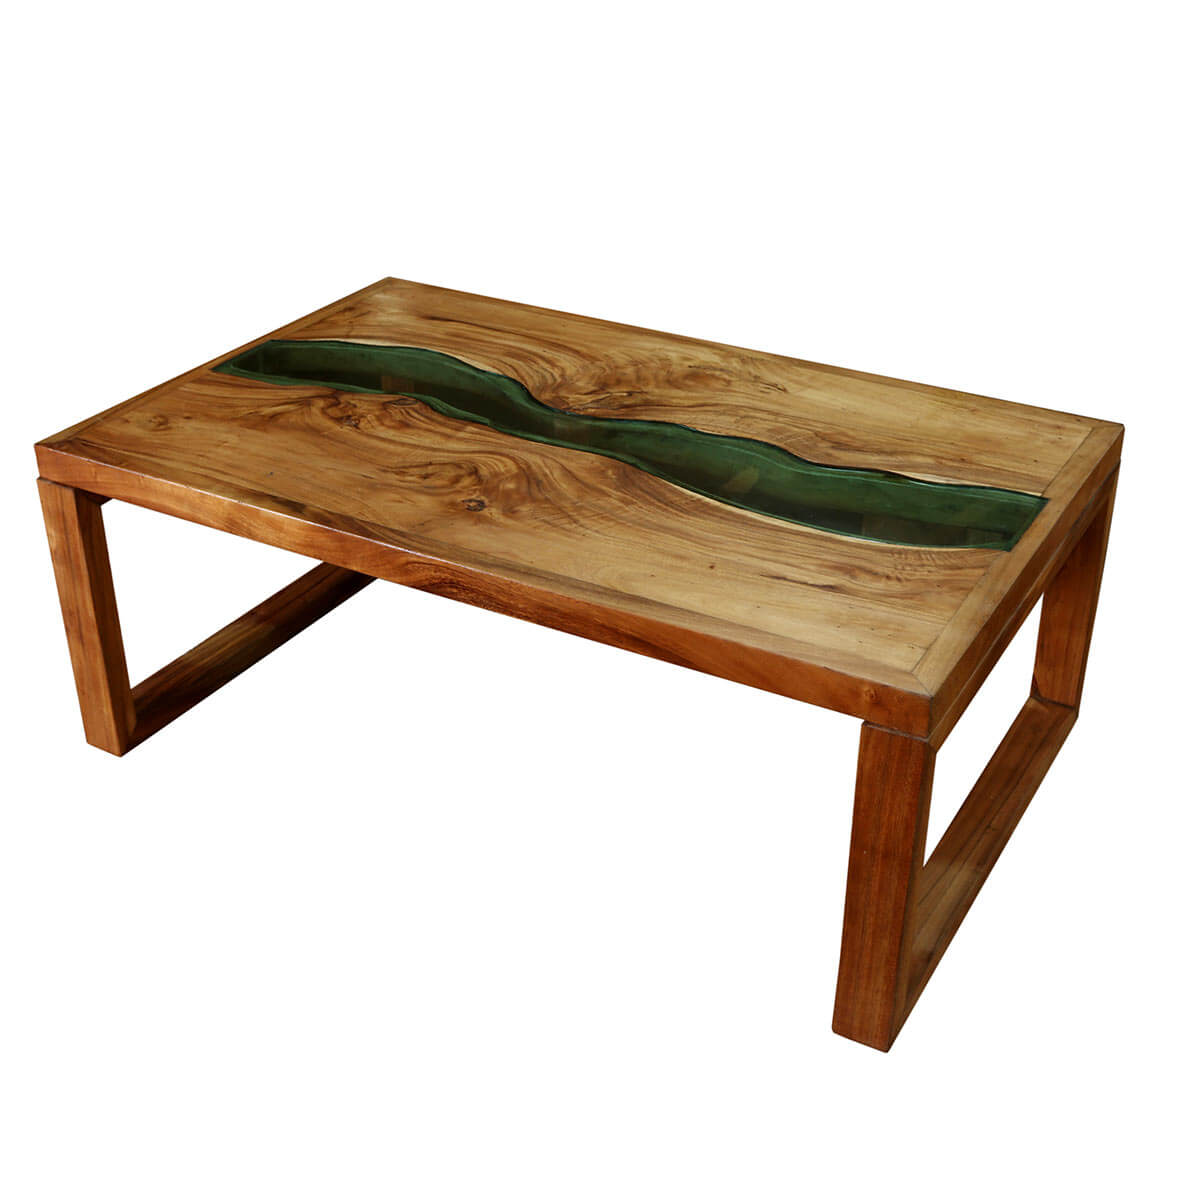 Wood For Coffee Table Top: Milwaukee Suar Wood Glass Top Rustic Coffee Table